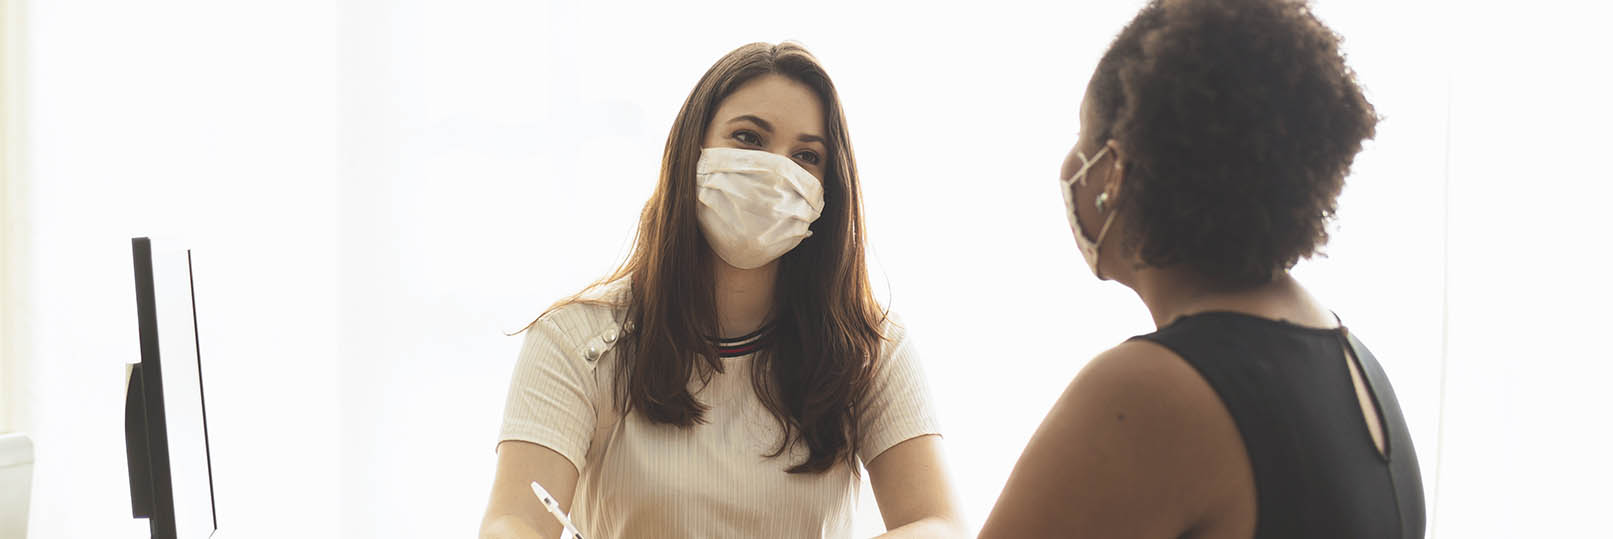 two women wearing masks at a job interview